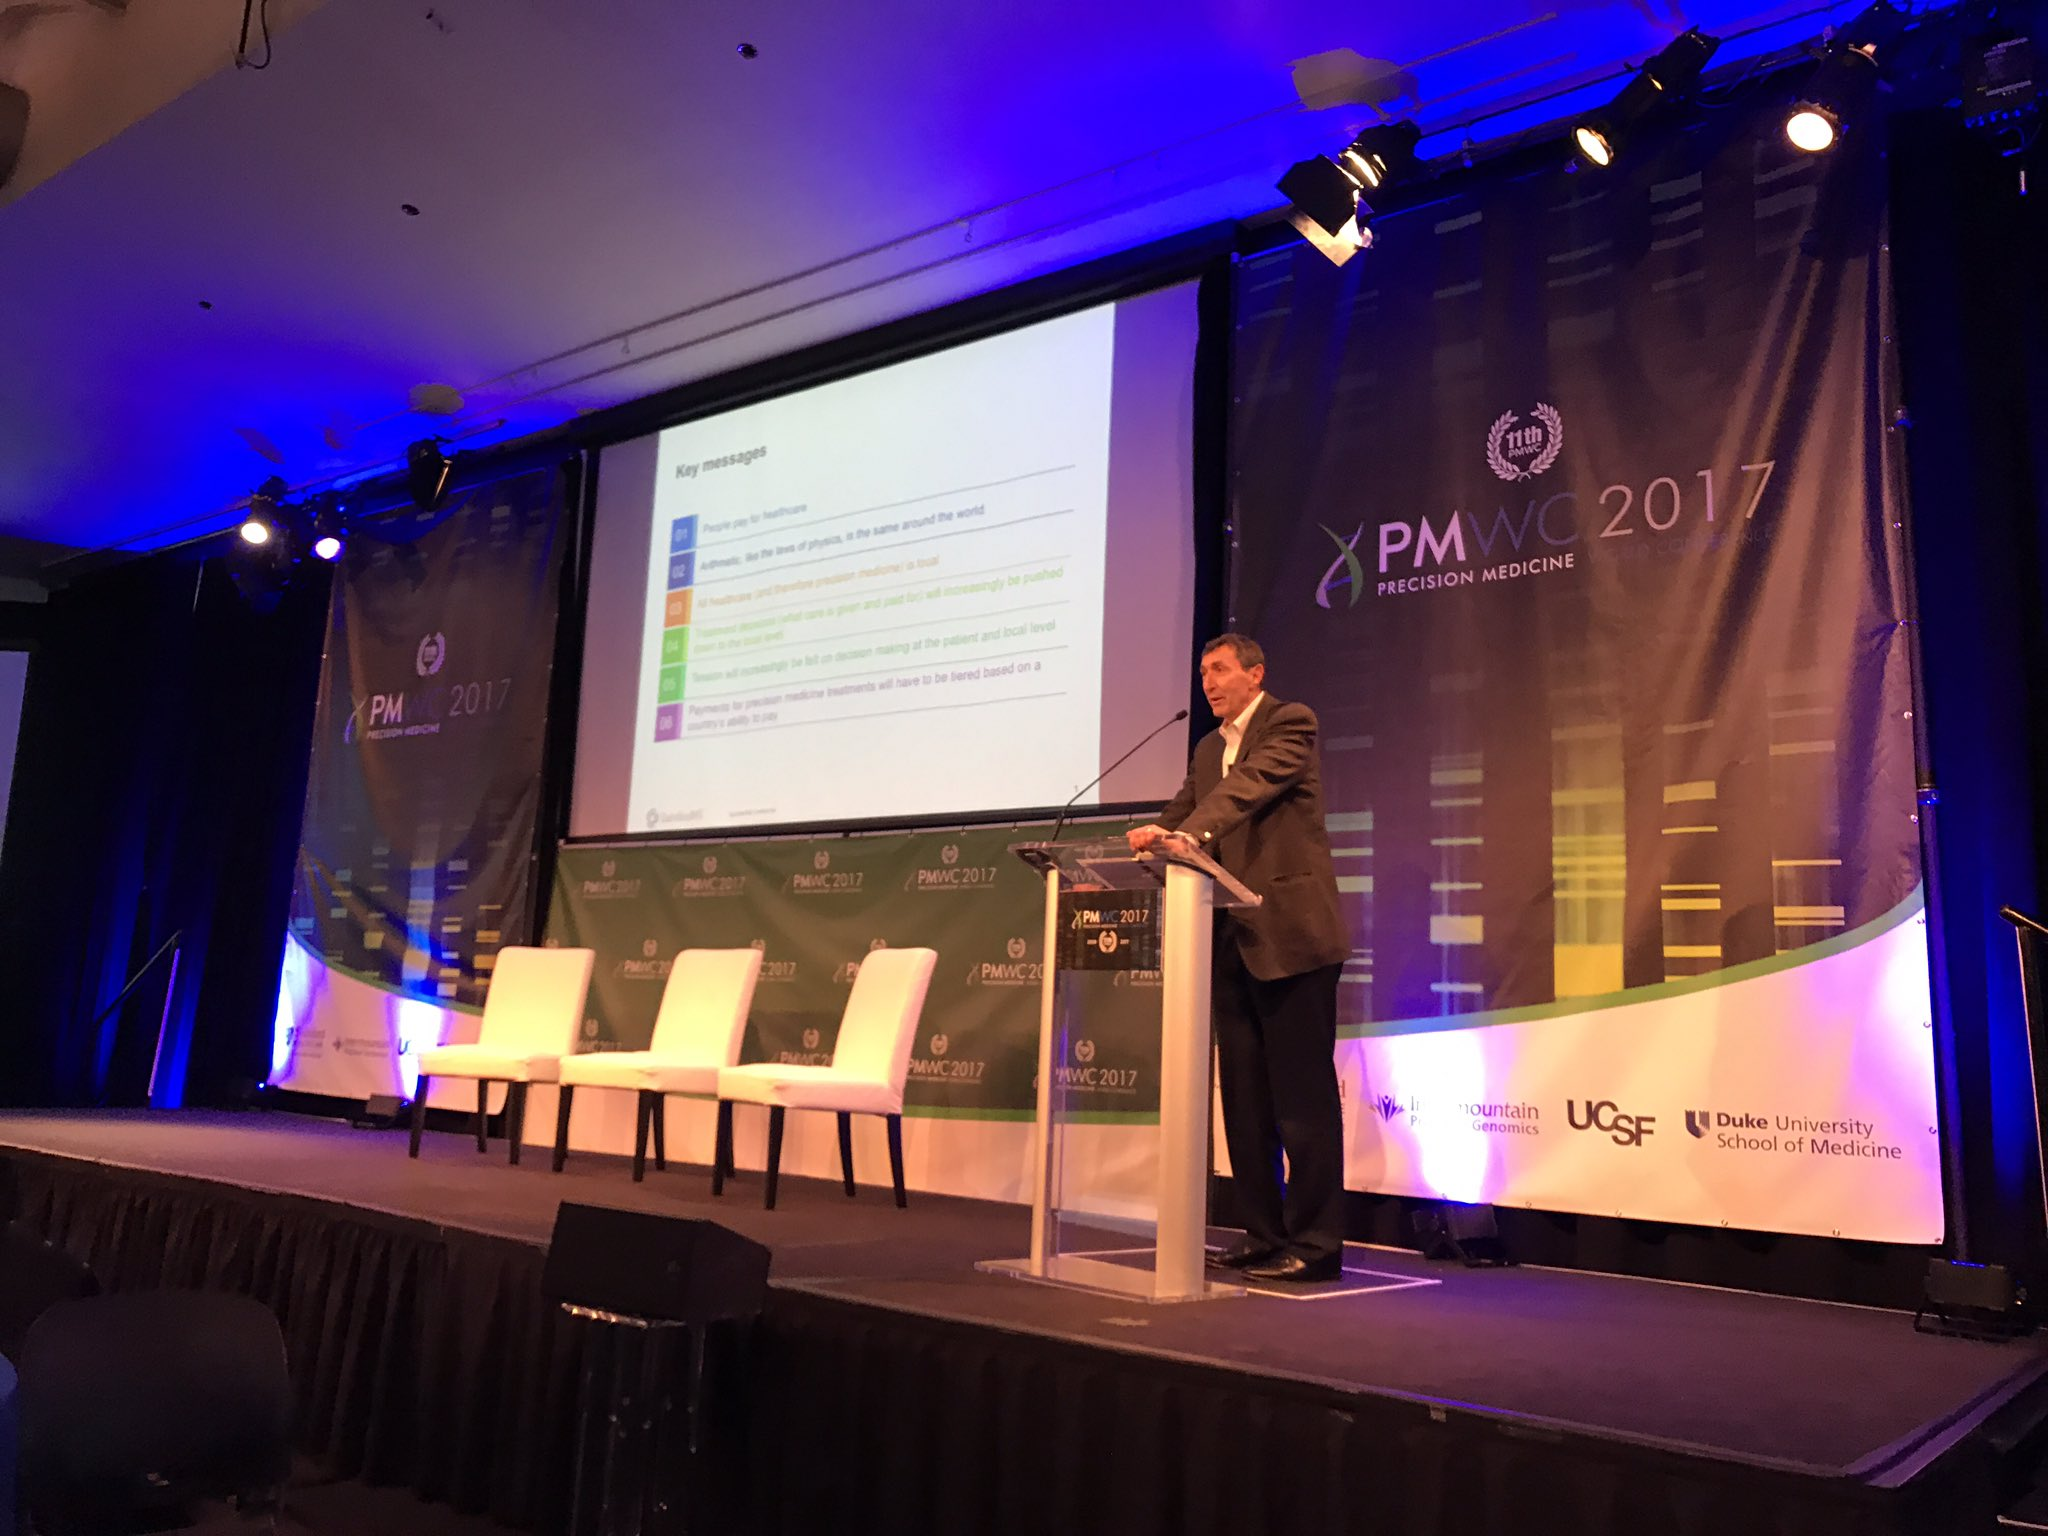 B. Kelly @Quintiles $1 trillion in US could be allocated to PM if we as a society behave differently #PMWC17 https://t.co/qgIDpGoXBS